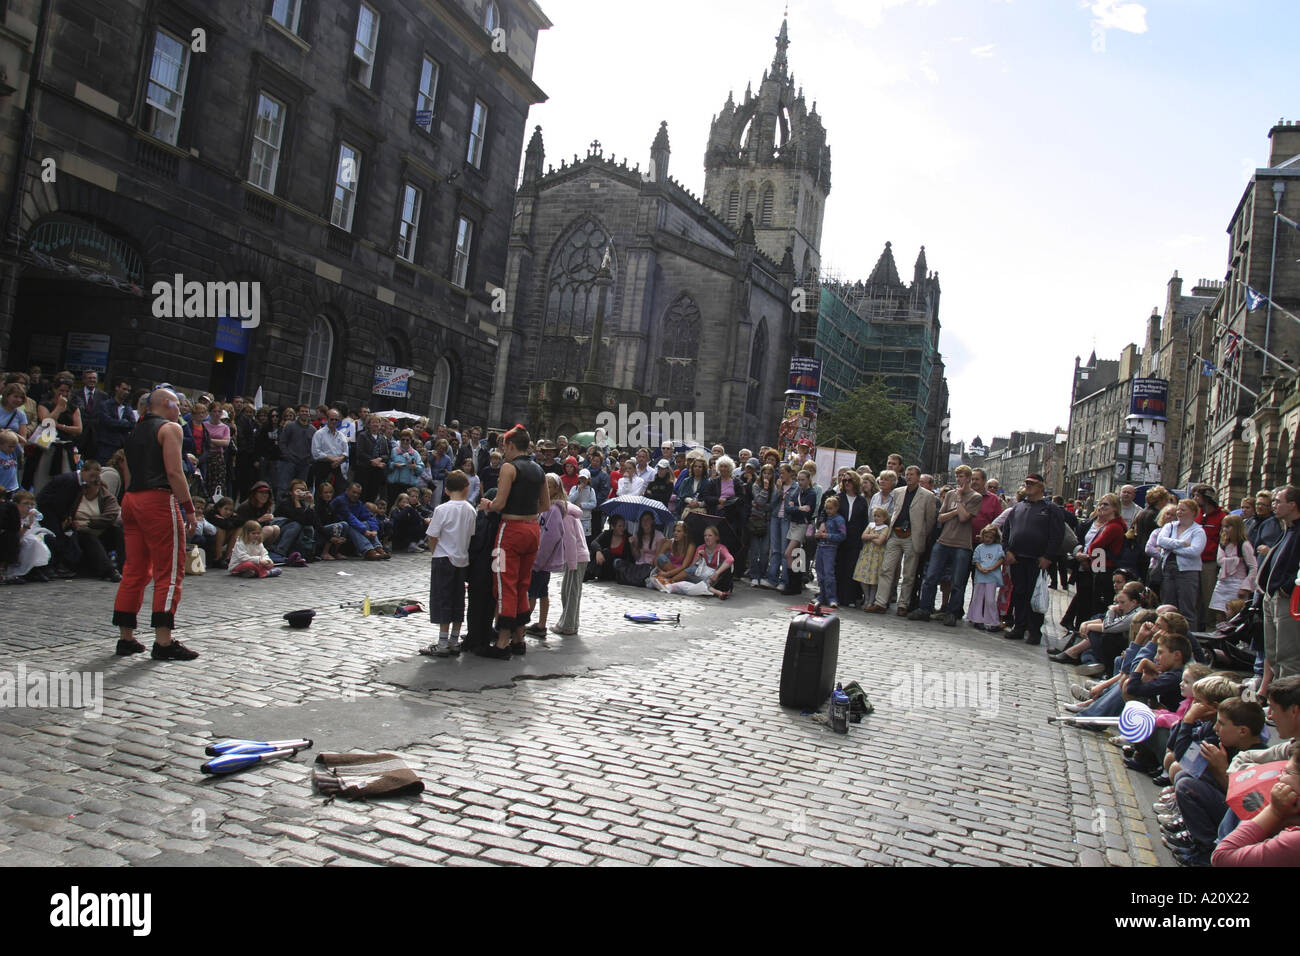 Street theatre performers entertain tourists in the Royal Mile High Street during annual International Arts festival, Edinburgh. - Stock Image